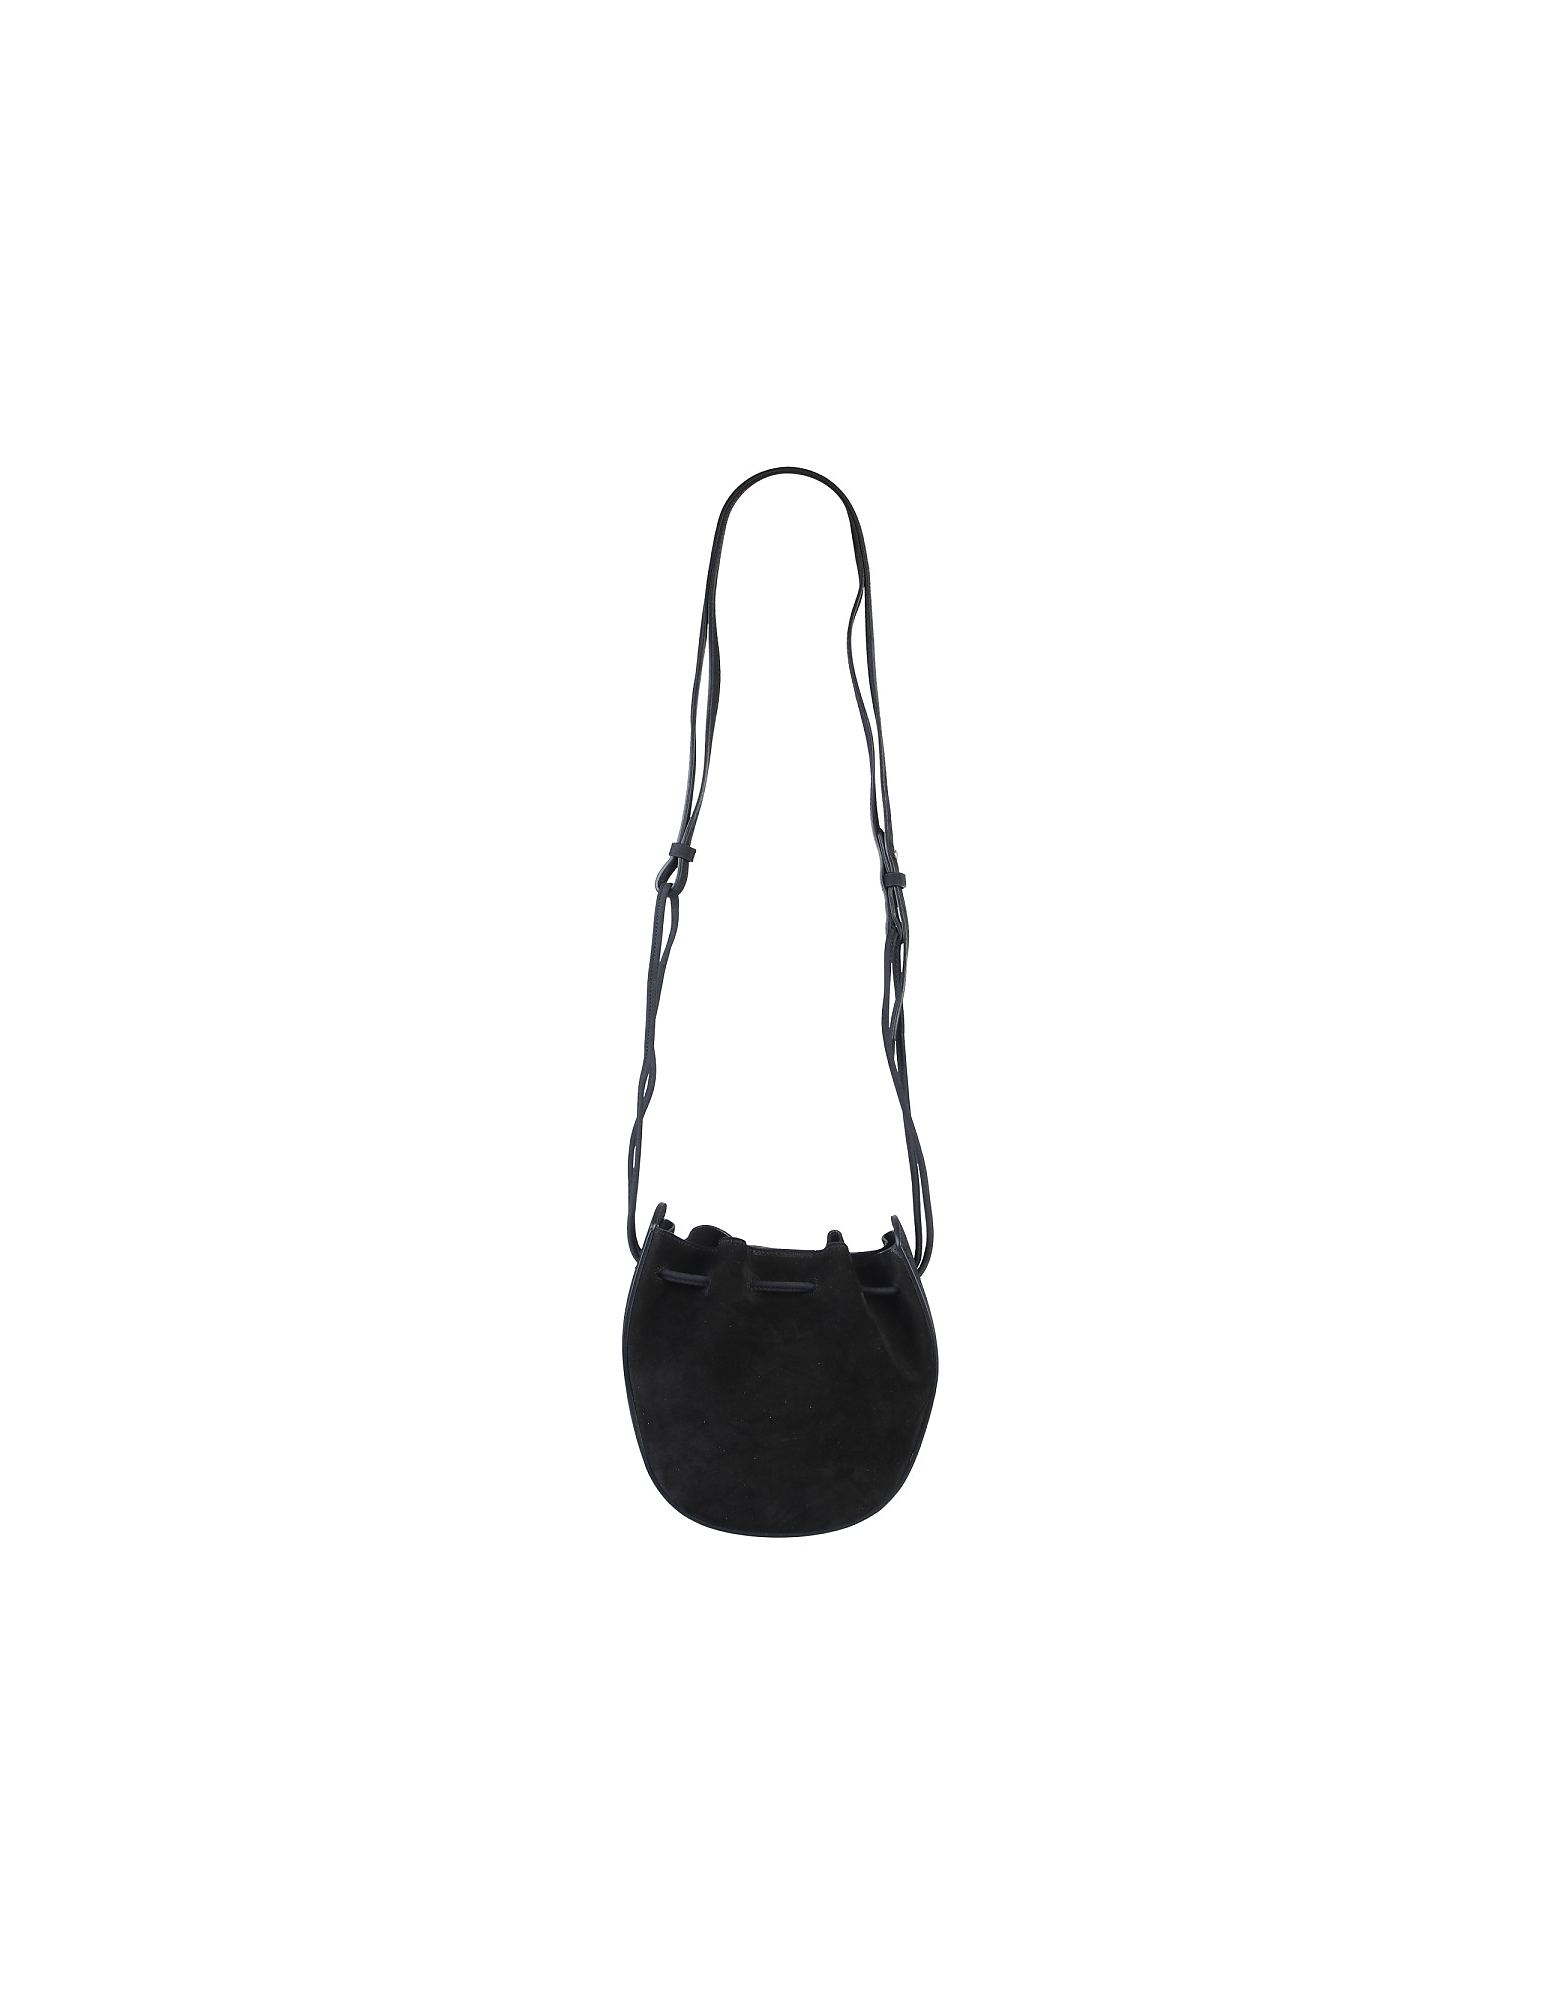 Rebecca Minkoff Designer Handbags, Bucket Bag